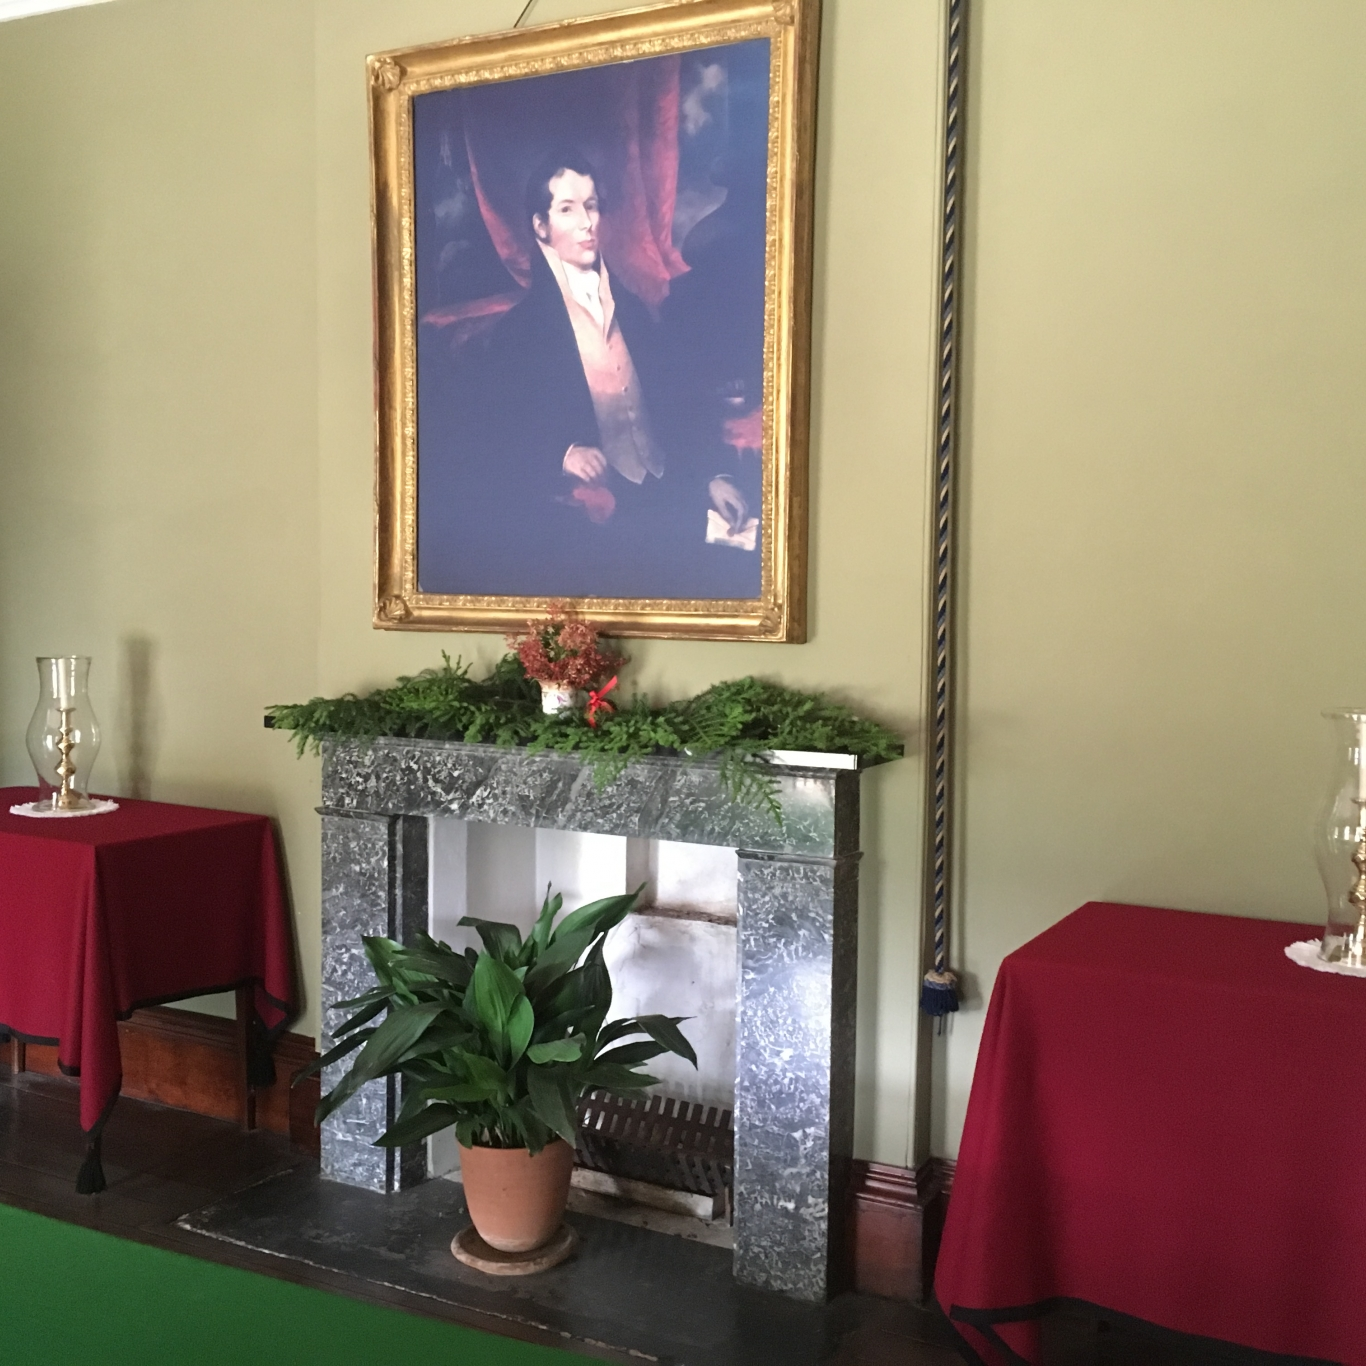 Floral decoration on mantelpiece with portrait above